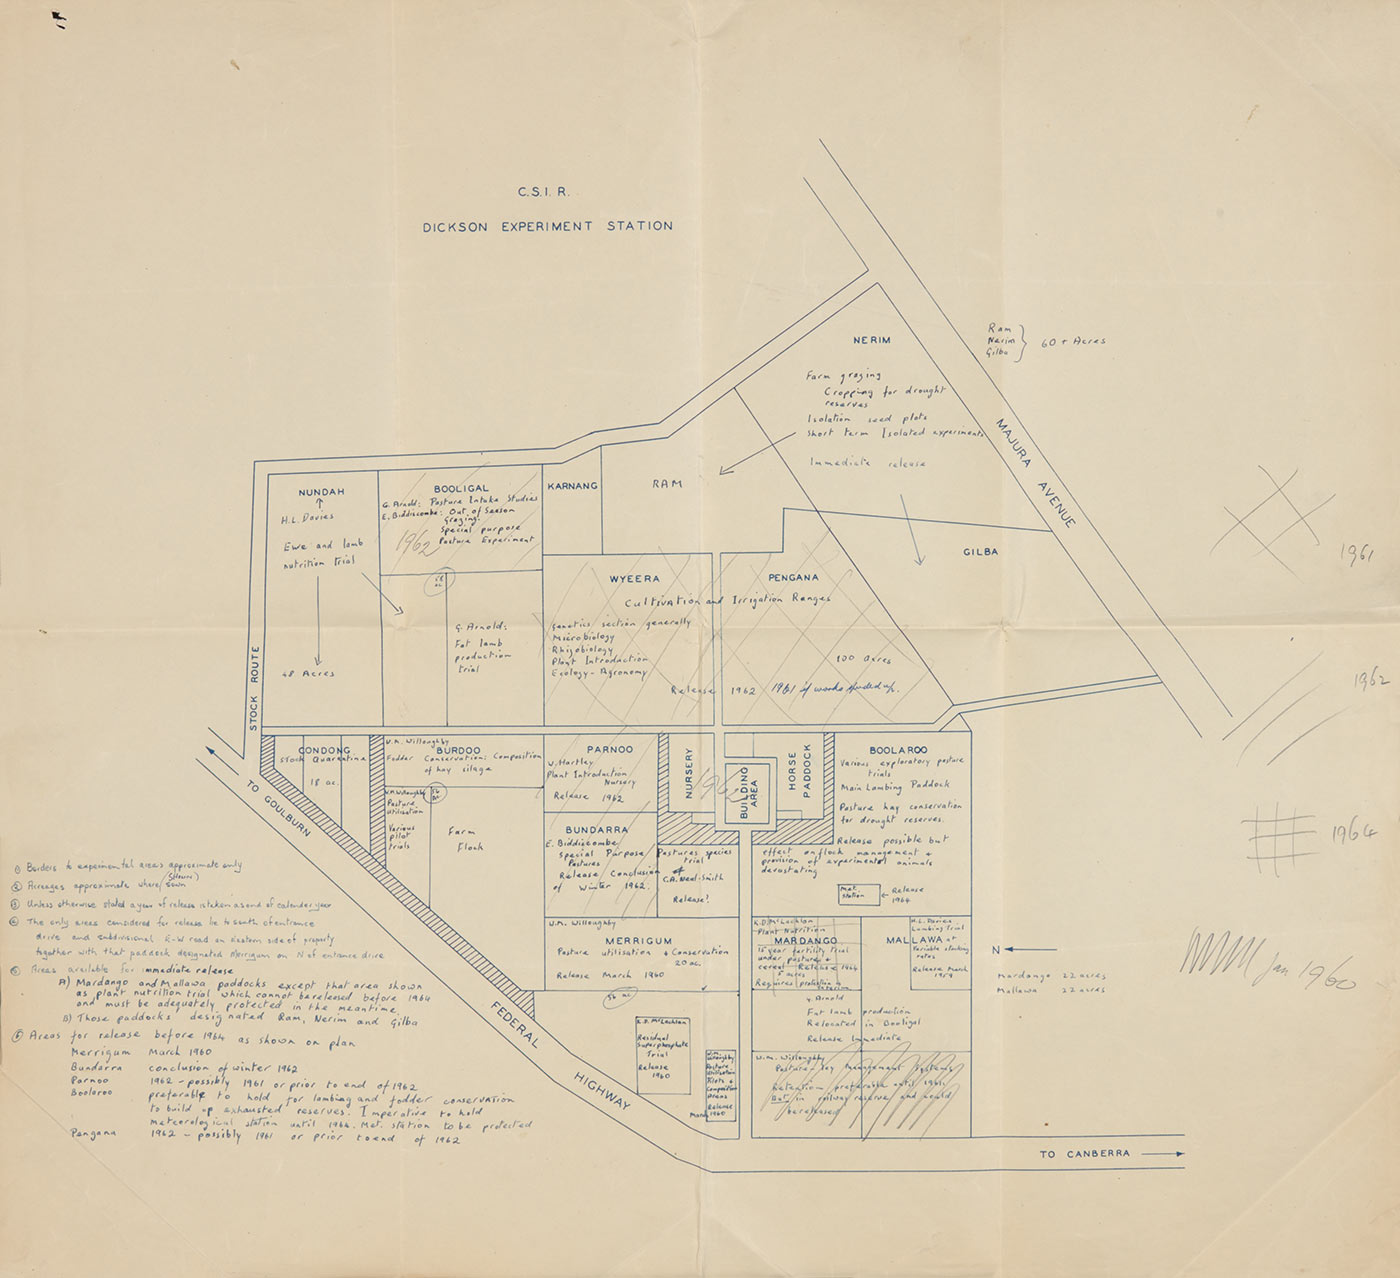 A plan of Dickson Experiment Station showing what crop and pasture trials were underway in the late 1950s and early 1960s. - click to view larger image